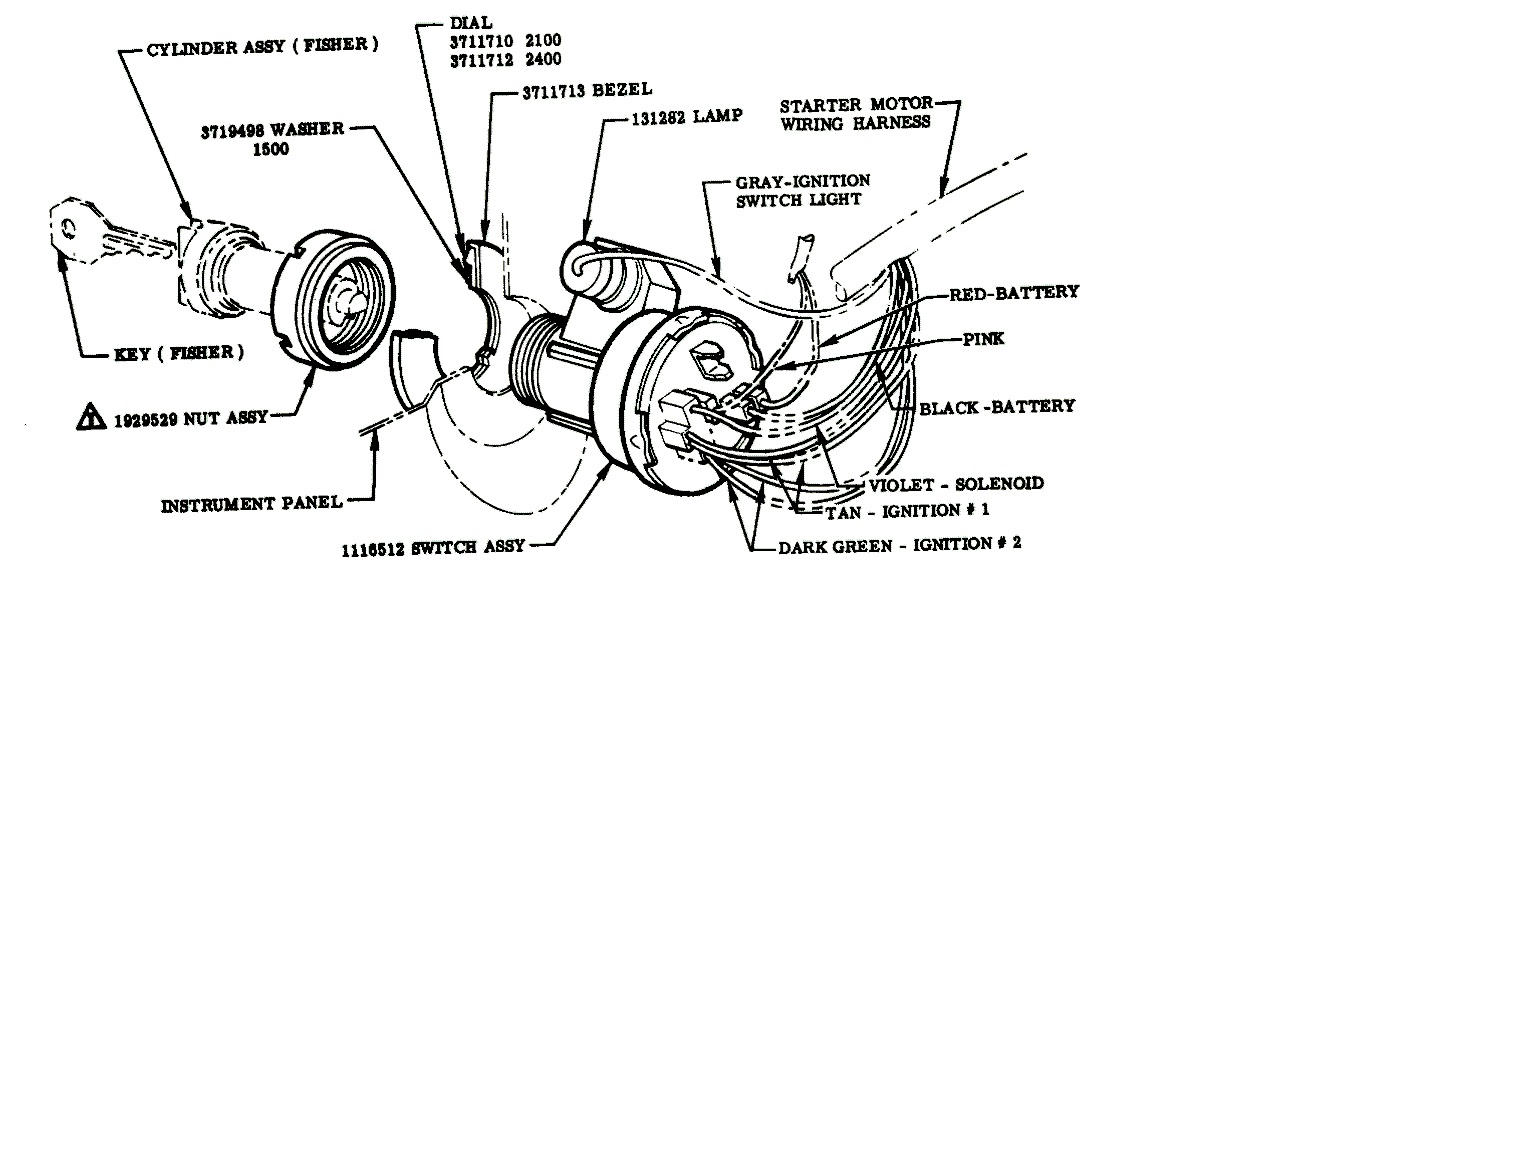 ford hei distributor wiring diagram ford ignition coil diagram hei distributor wiring diagram at fashall.co